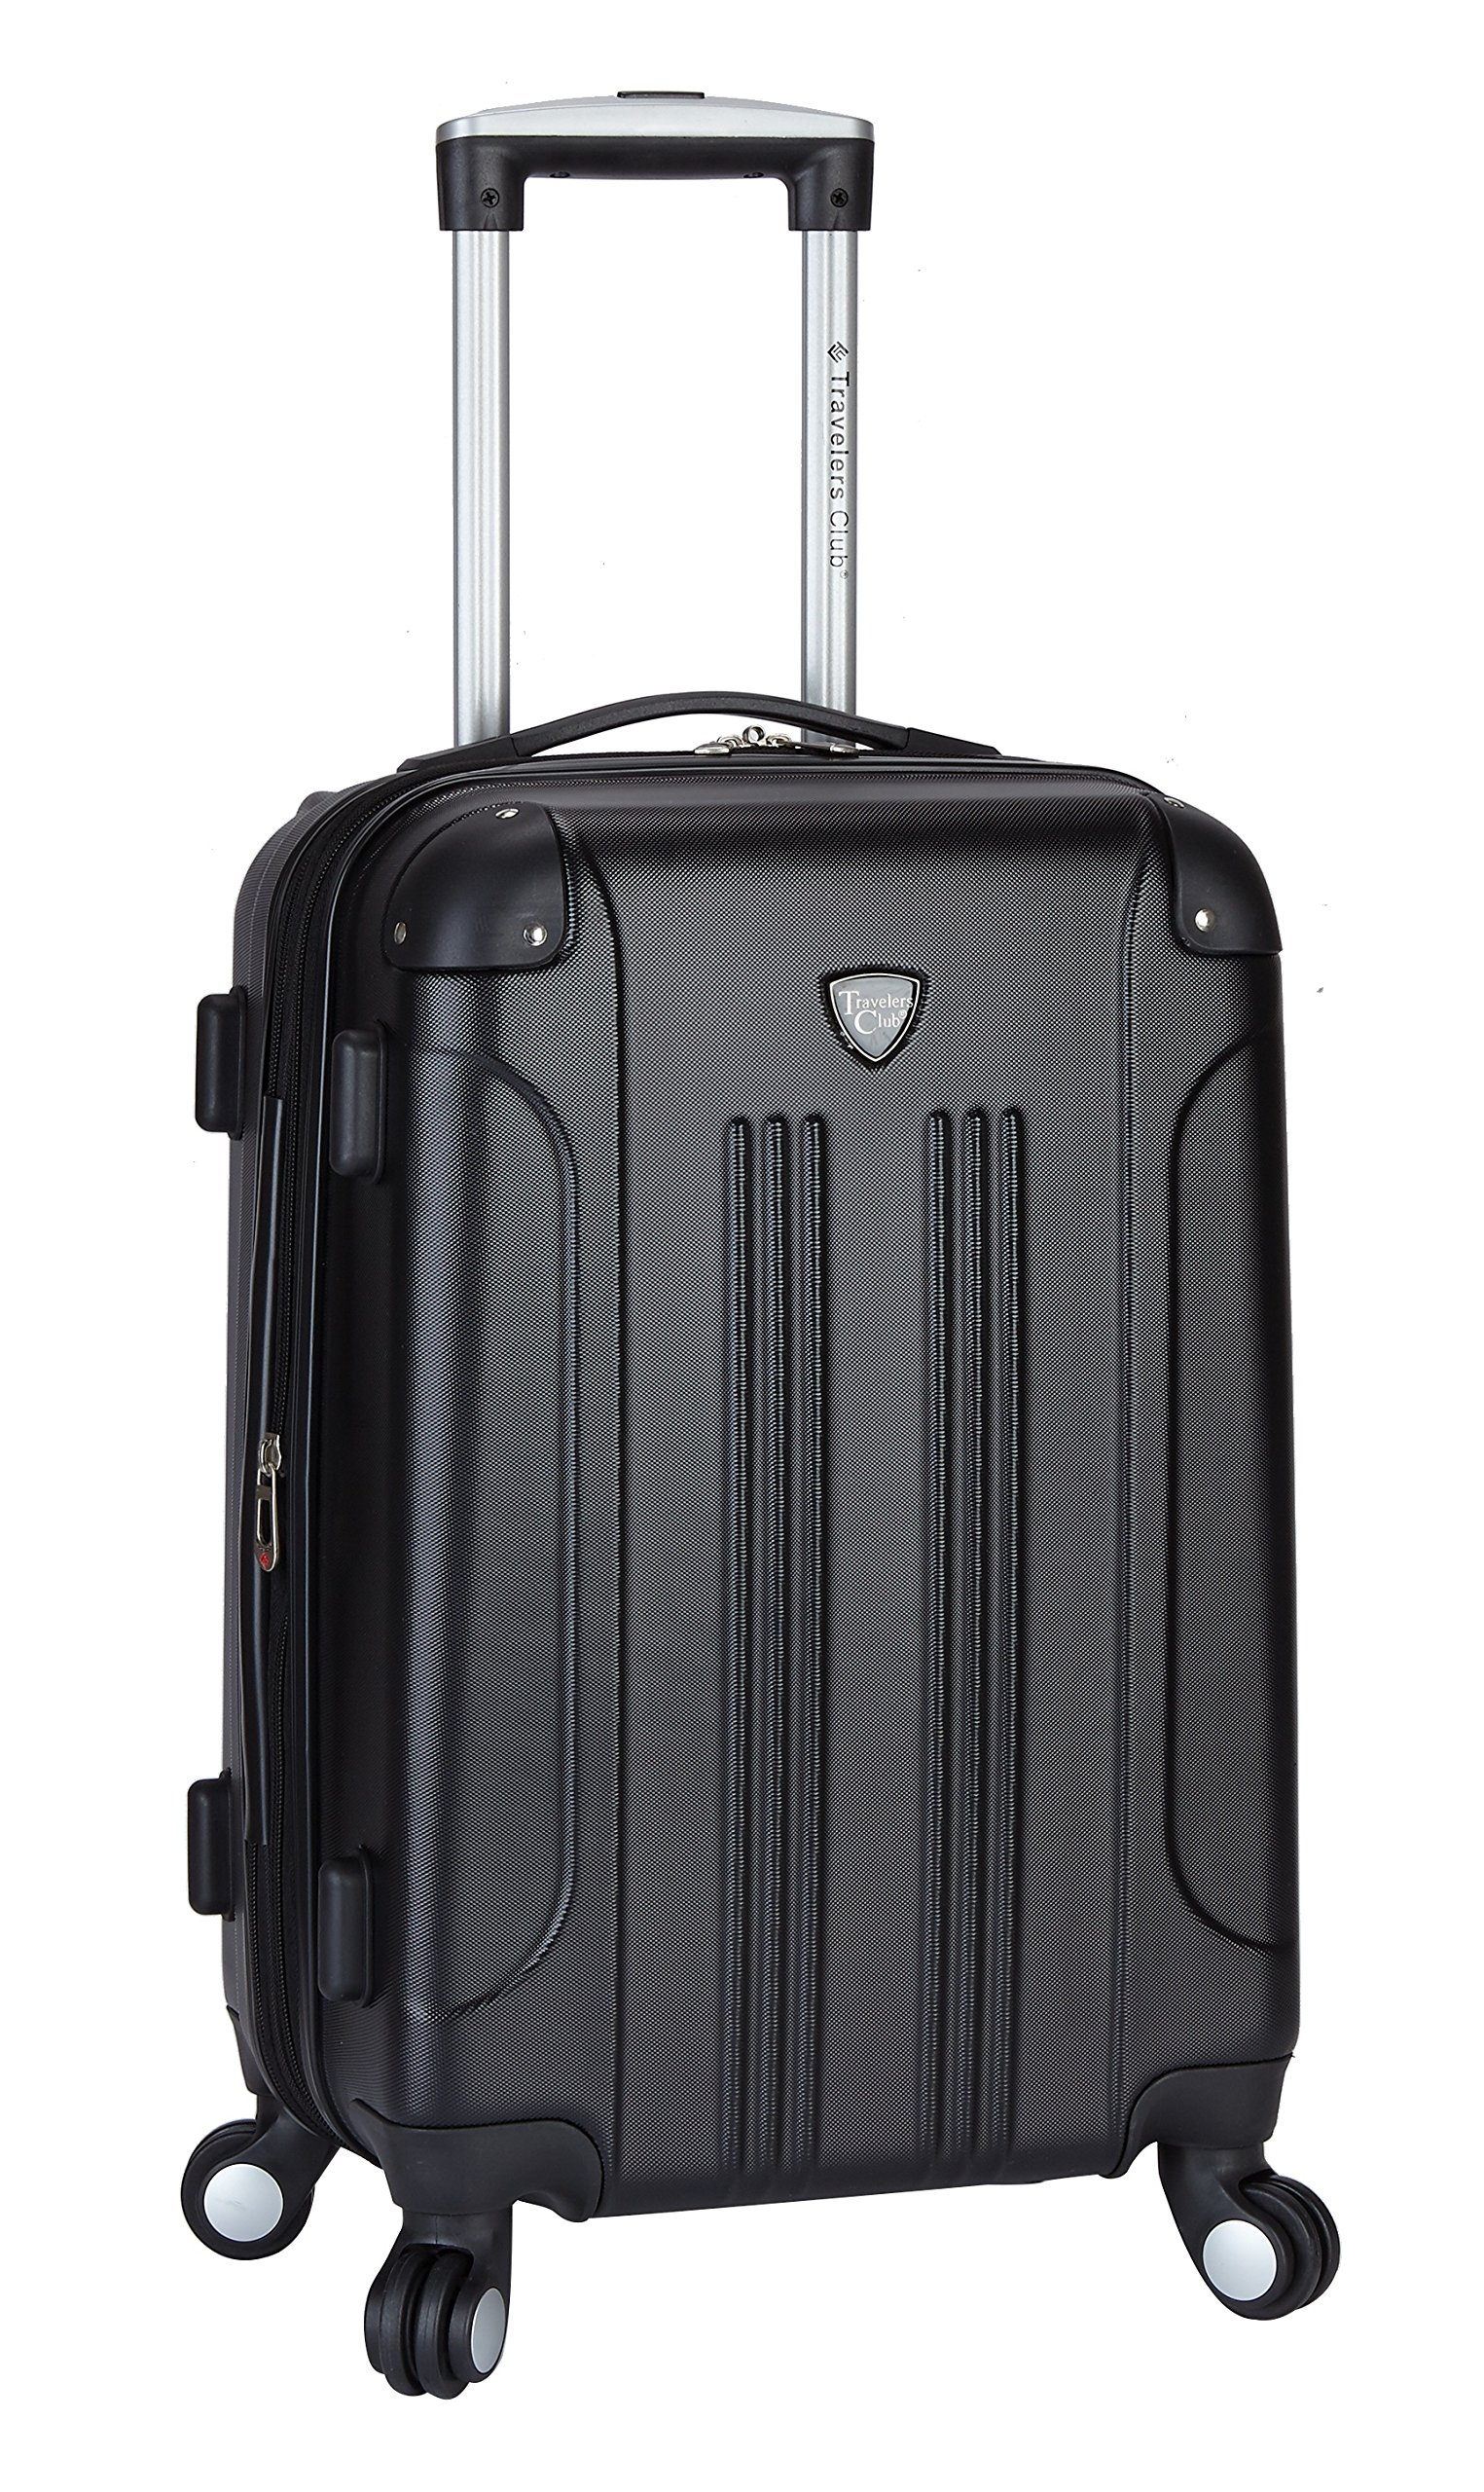 Travelers Club 20'' Expandable Hardside Carry-On Luggage with Easy 360º Mobility